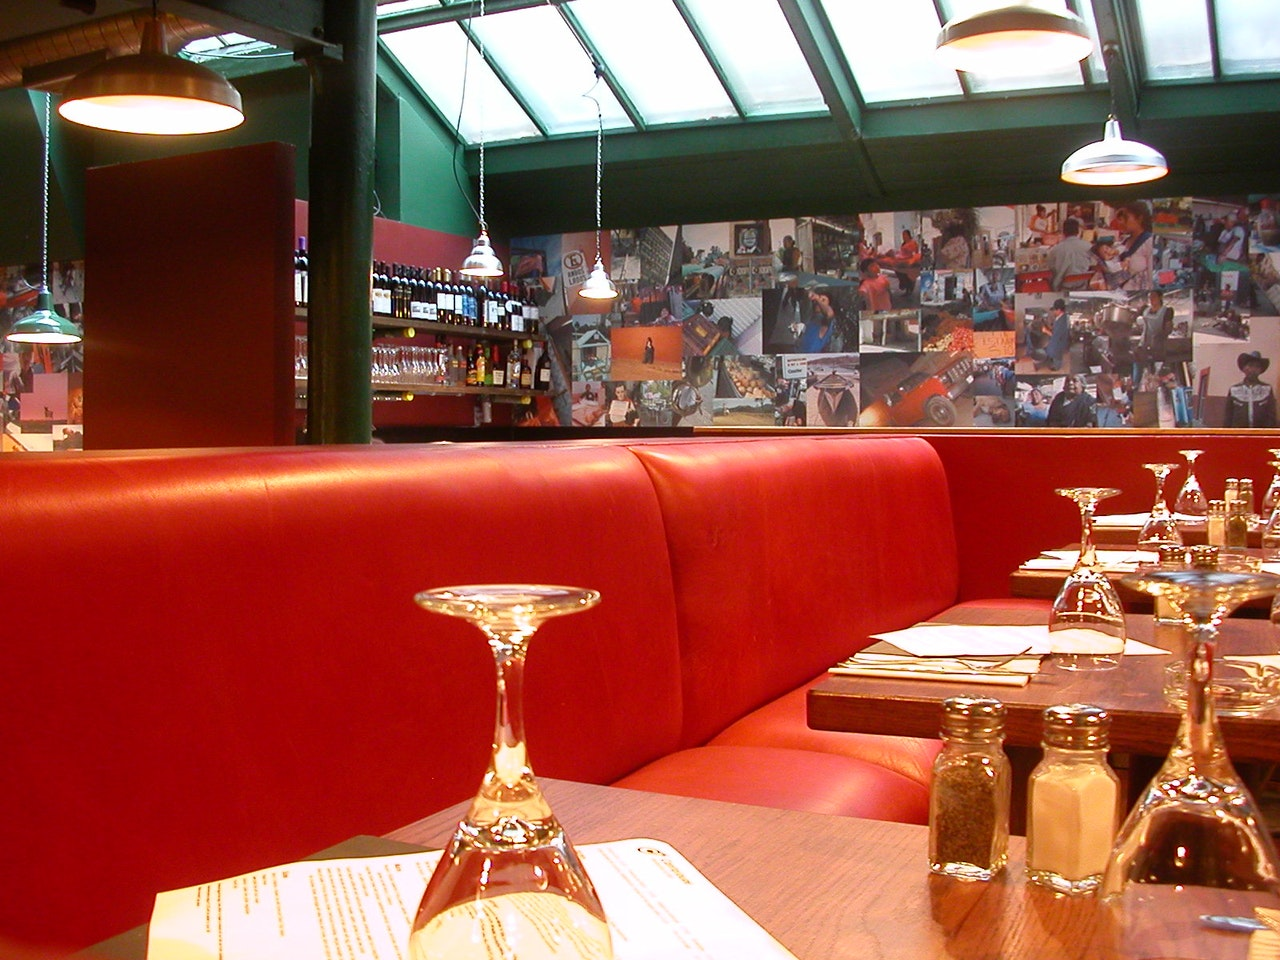 The Cantaloupe, Shoreditch